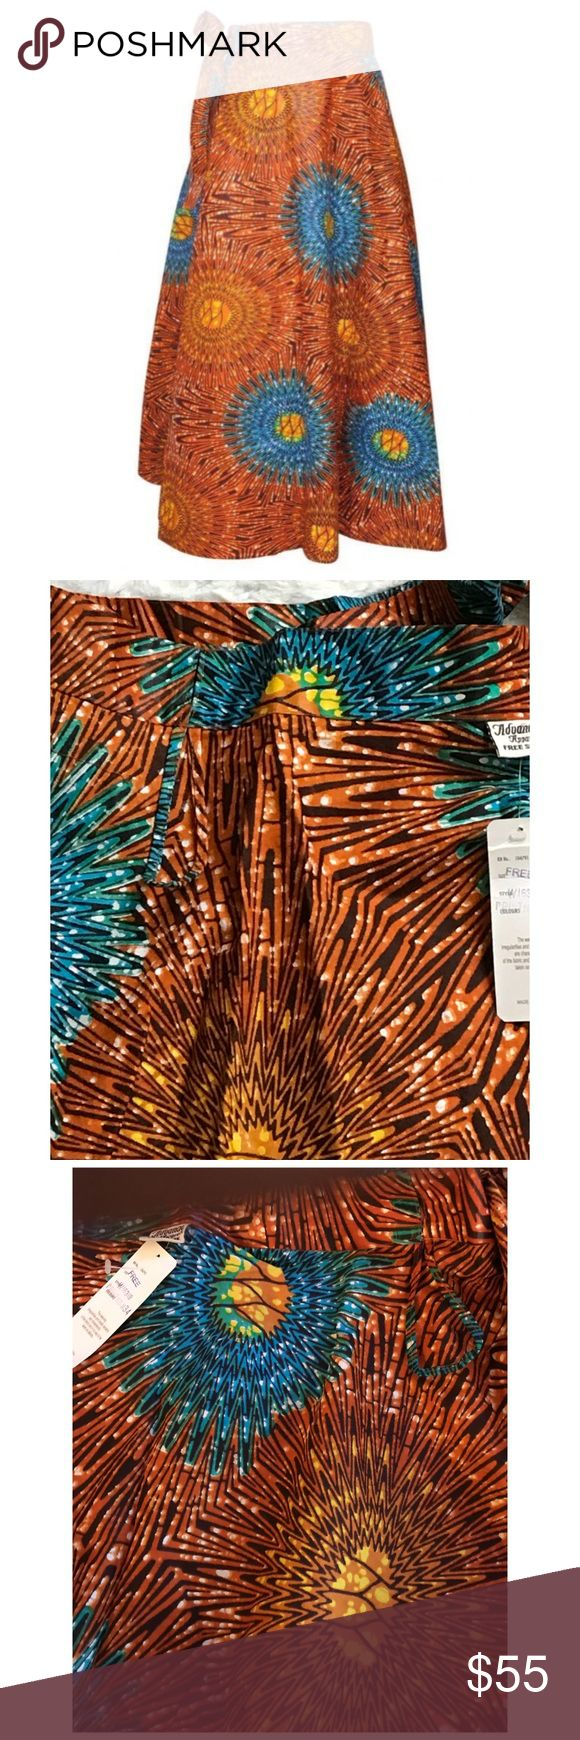 """Ankara *orangeburst* Maxi Wrap Skirt This gorgeous Maxi Wrap Skirt  Features Bold Circles of Orange & turquoise hues 4 Panels made of 100% Cotton Attached waist tie  1 1/2"""" waist band Fits up to 3X  Measures approximately  Up to 42"""" waist 39"""" Length Skirts Maxi"""